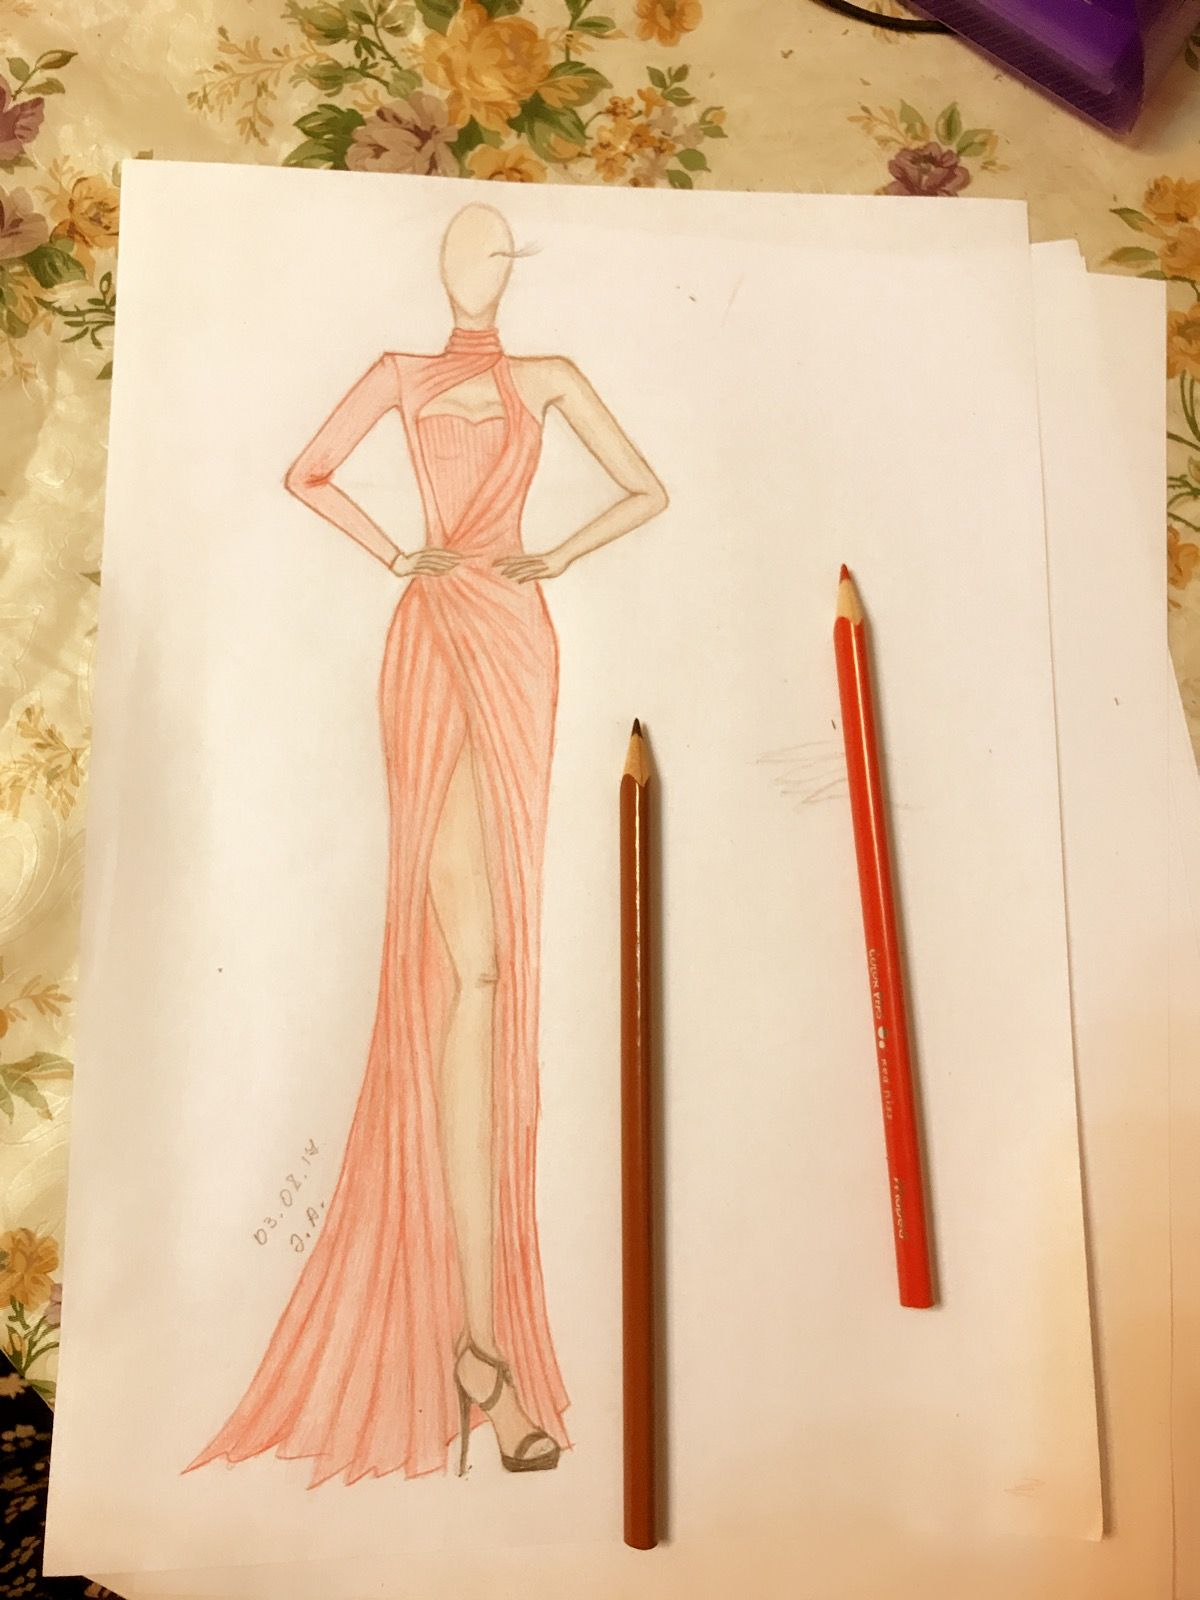 Pin by Aysel Aliyeva on Girl  Pinterest  Fashion illustrations and